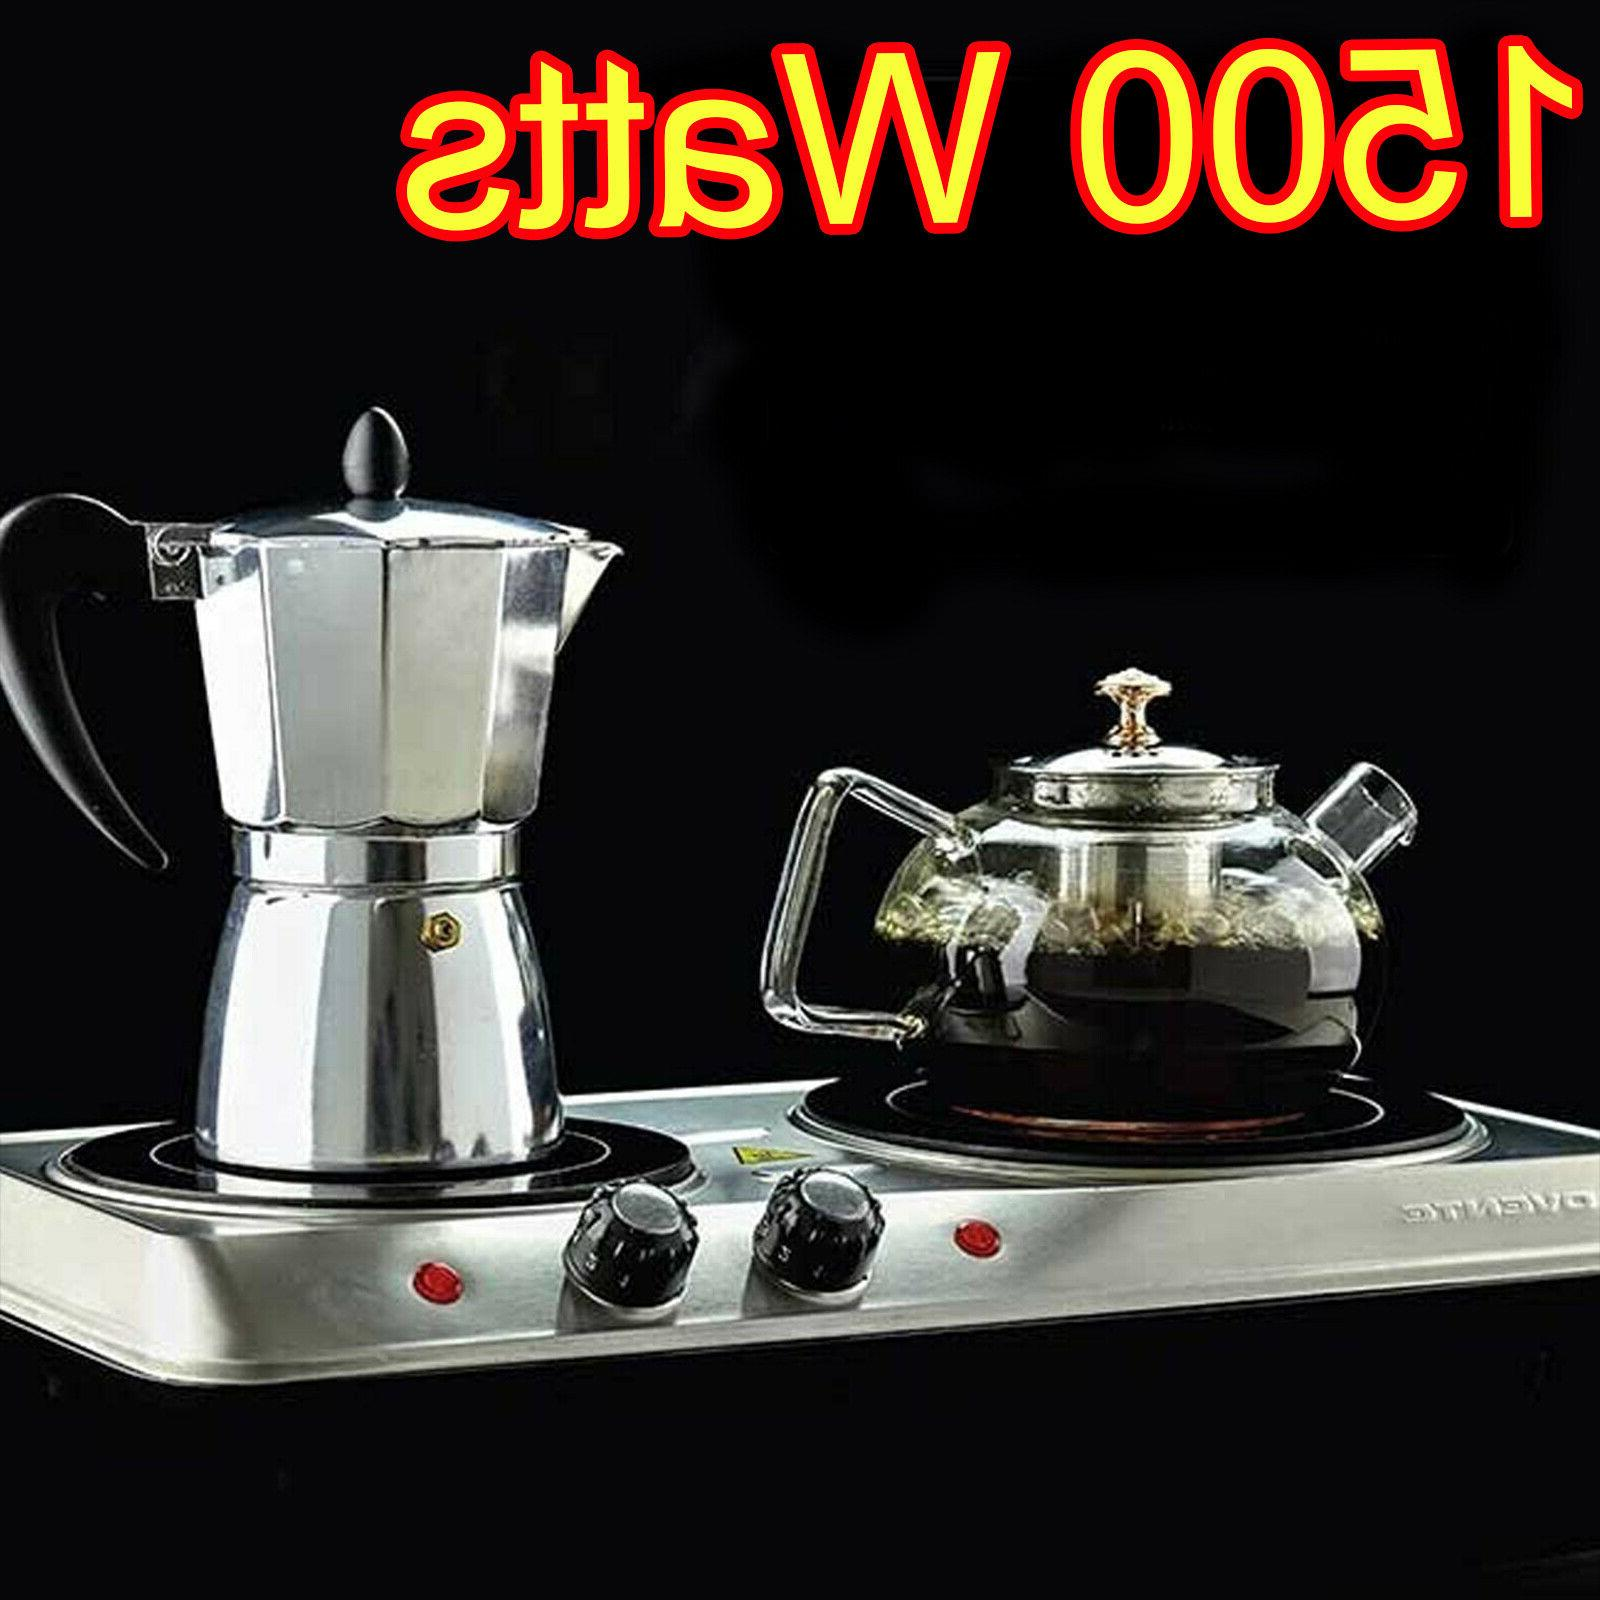 cooktop double burner infrared electric hot plate